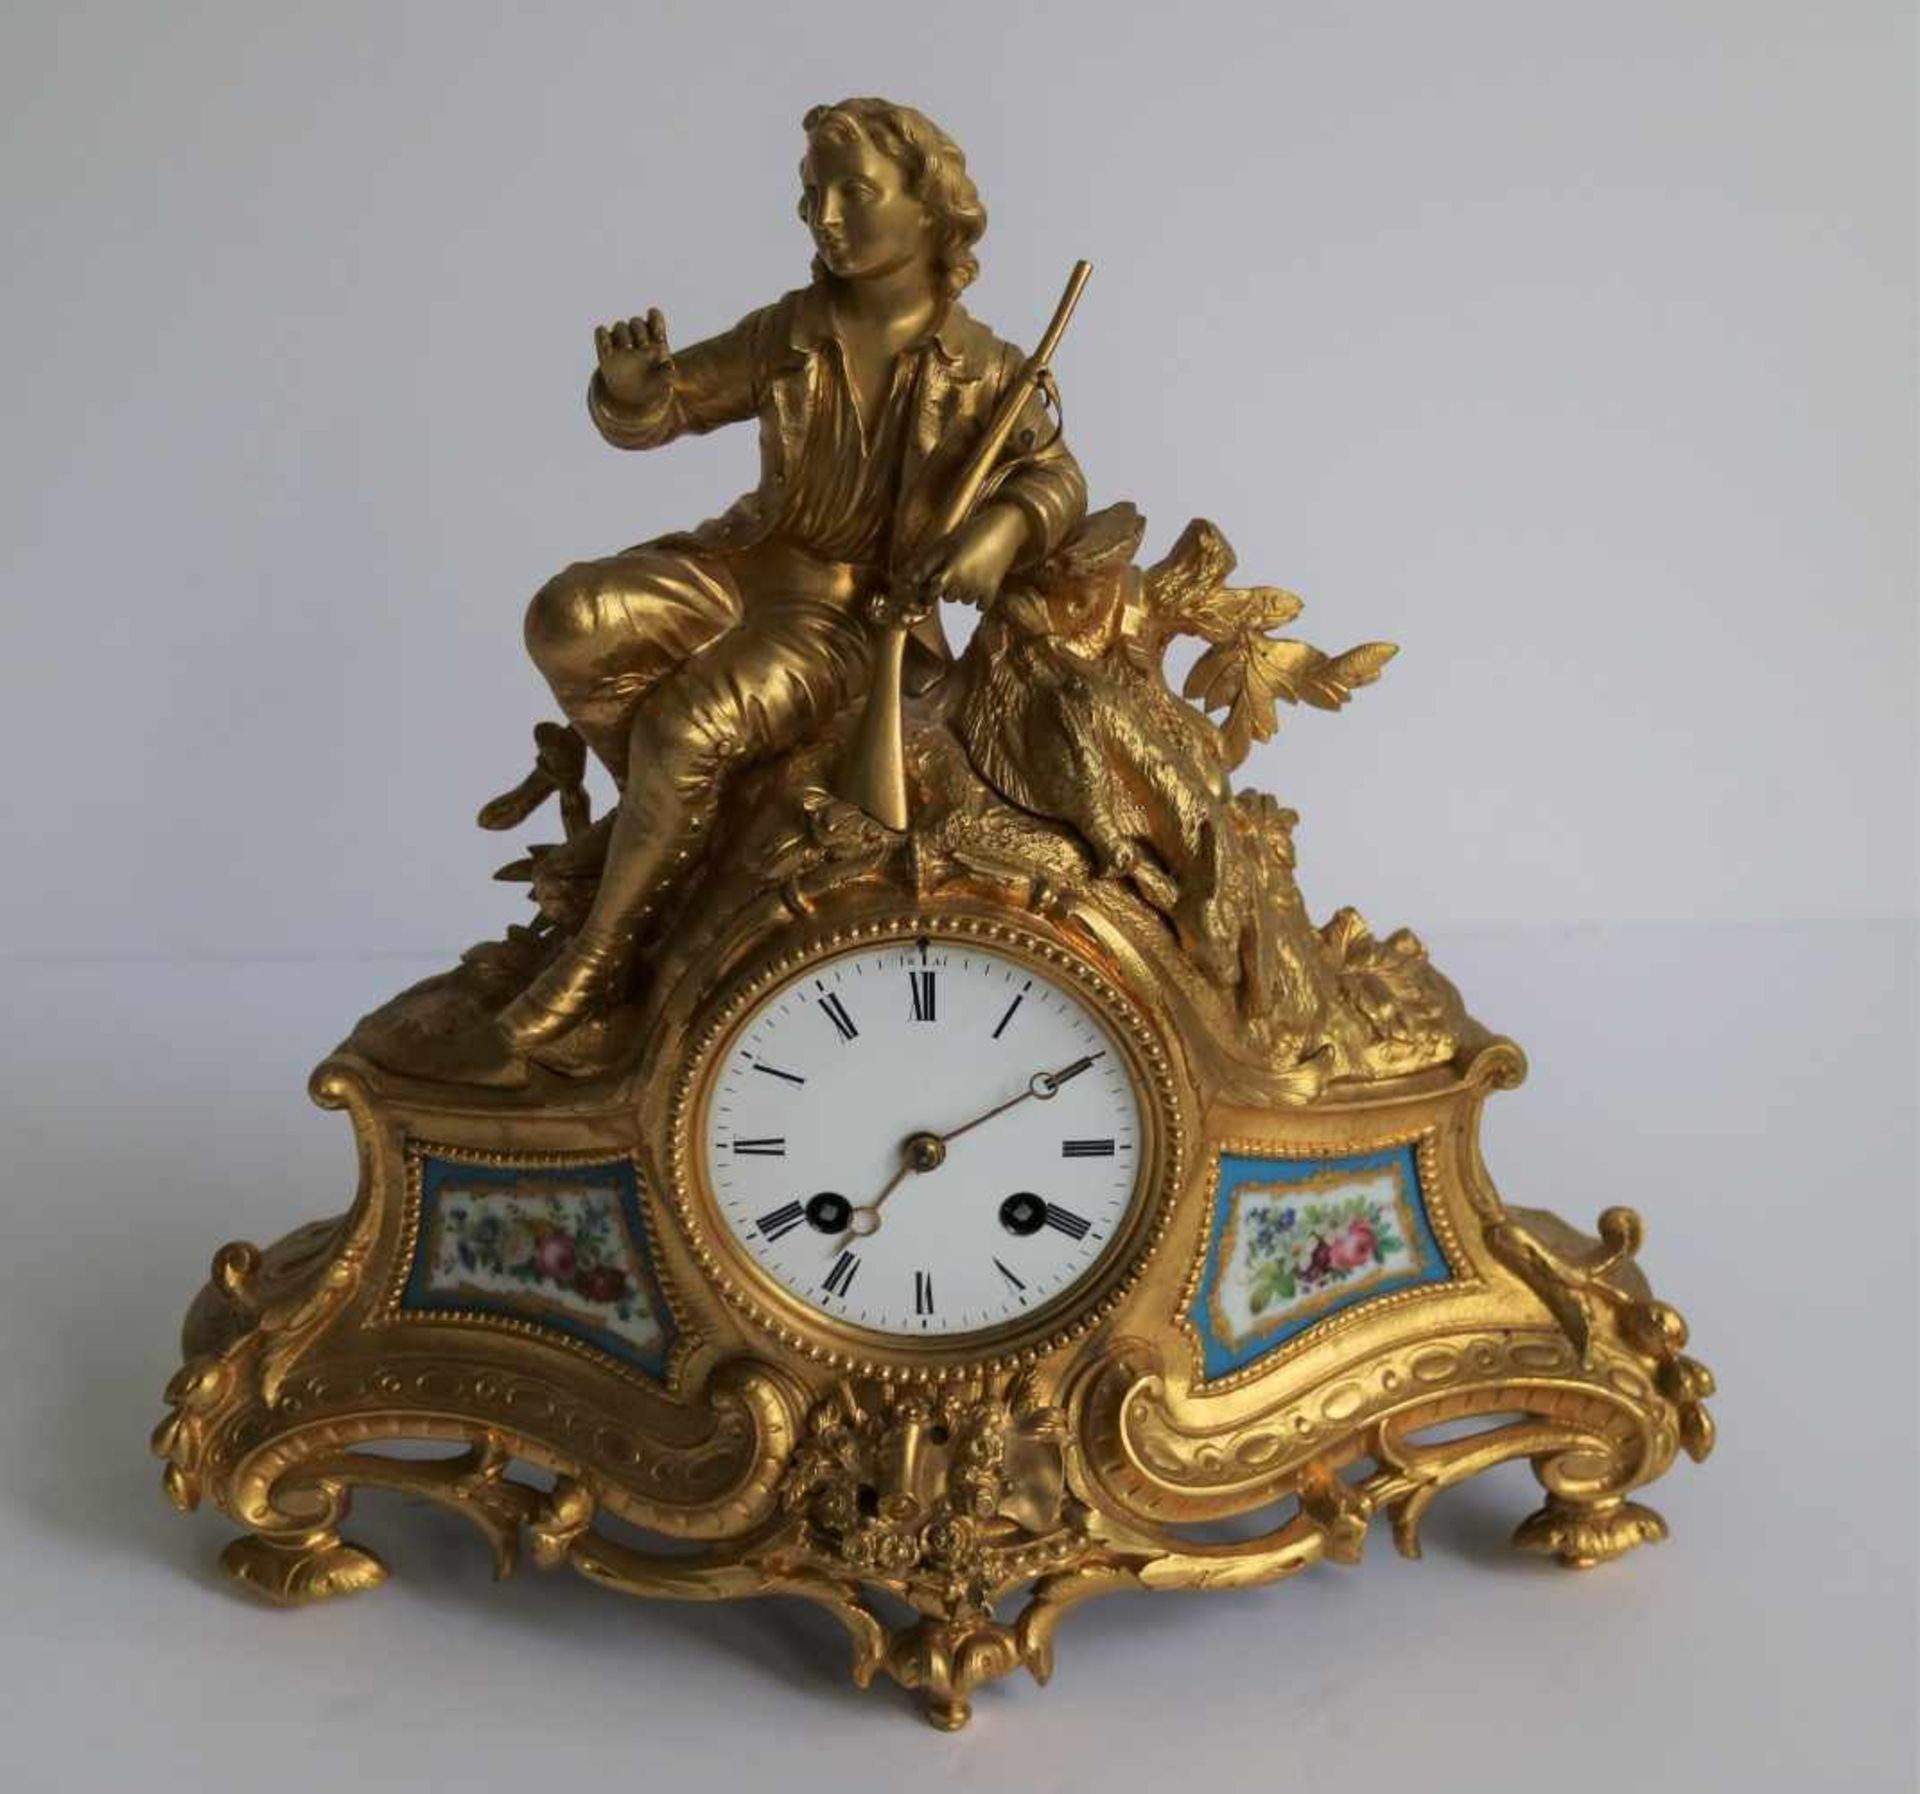 Los 423 - Fire gilded clock with Sèvres plaques H 31 B 32 cm